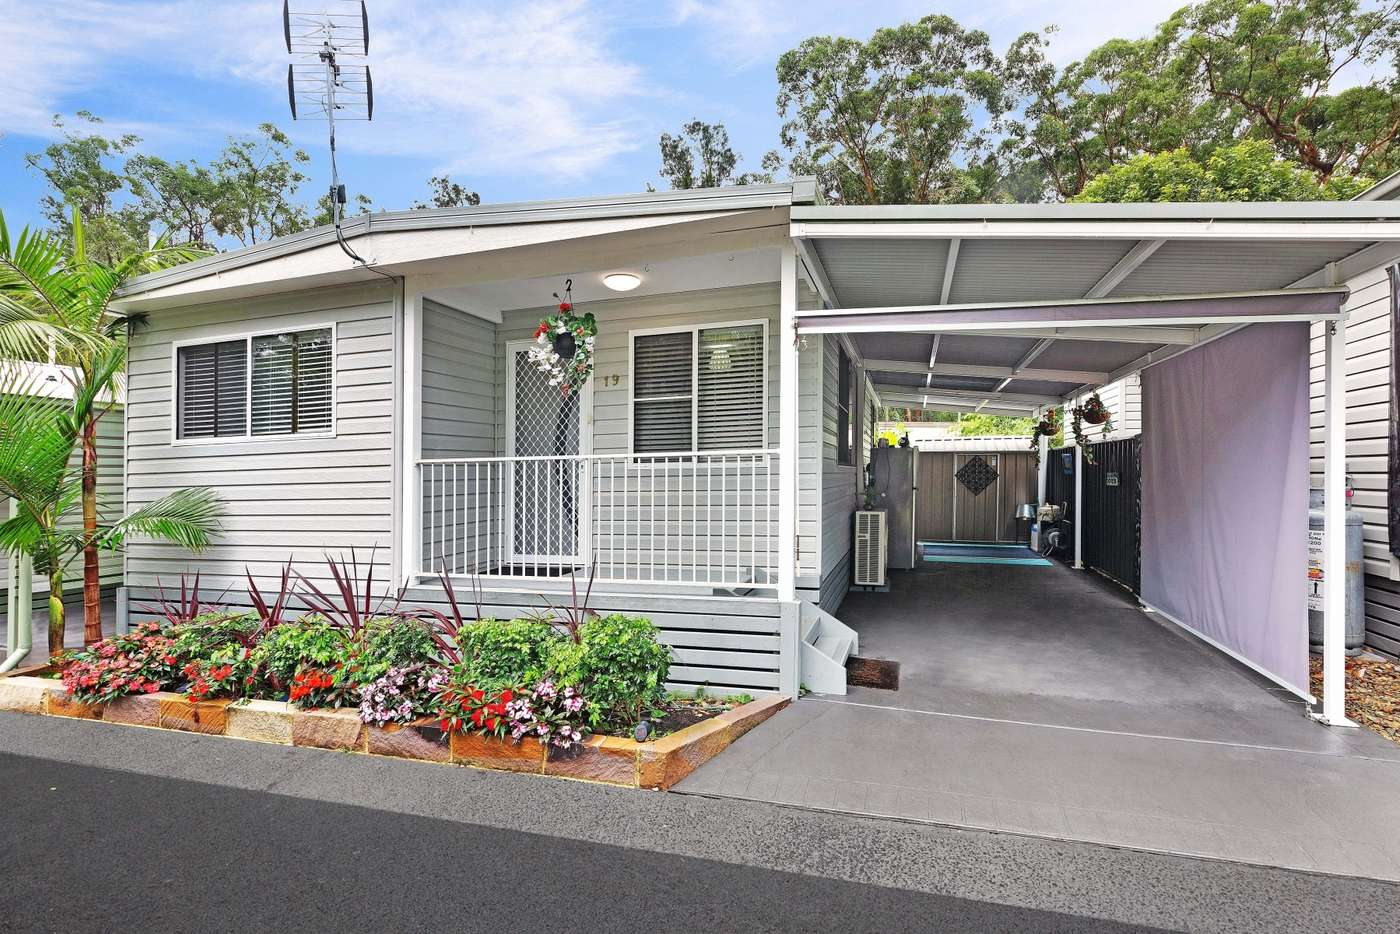 Main view of Homely unit listing, 19/437 Wards Hill Rd, Empire Bay NSW 2257